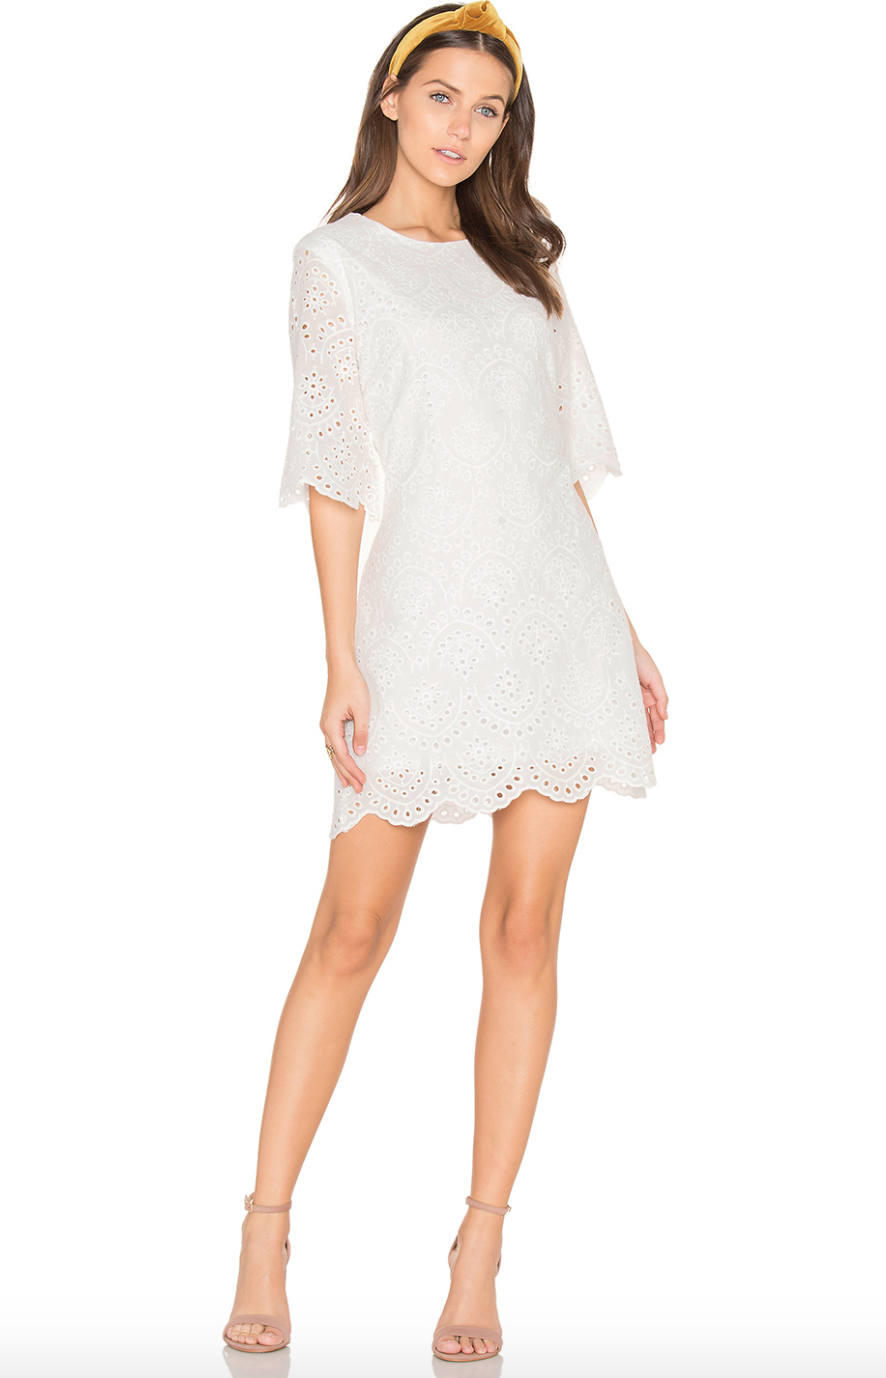 BIshop + Young scalloped mini dress $124